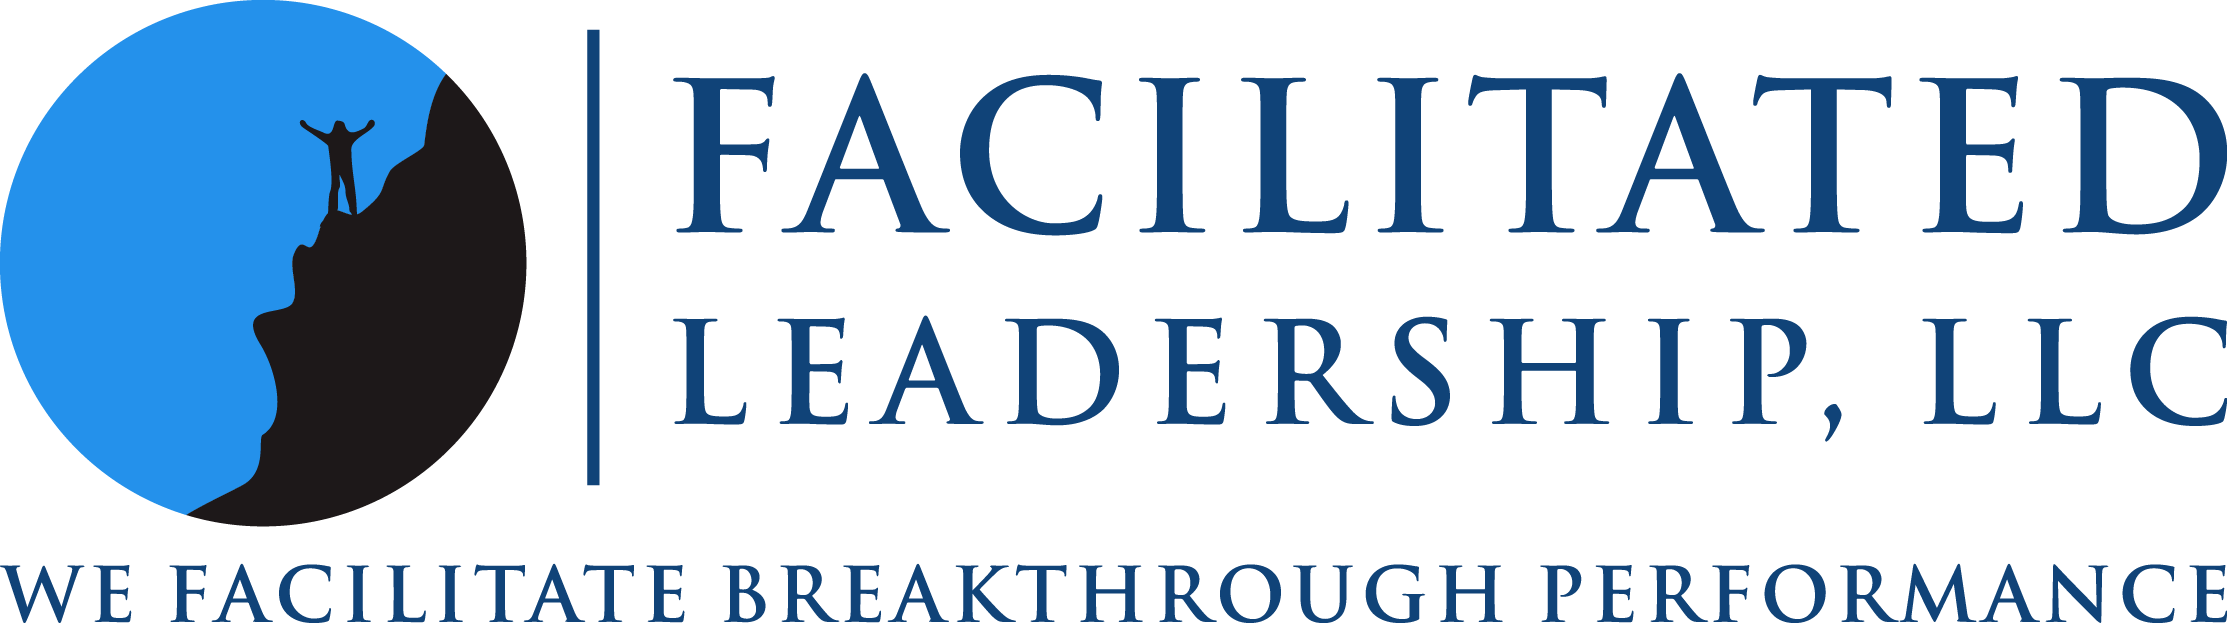 Facilitated Leadership Logo